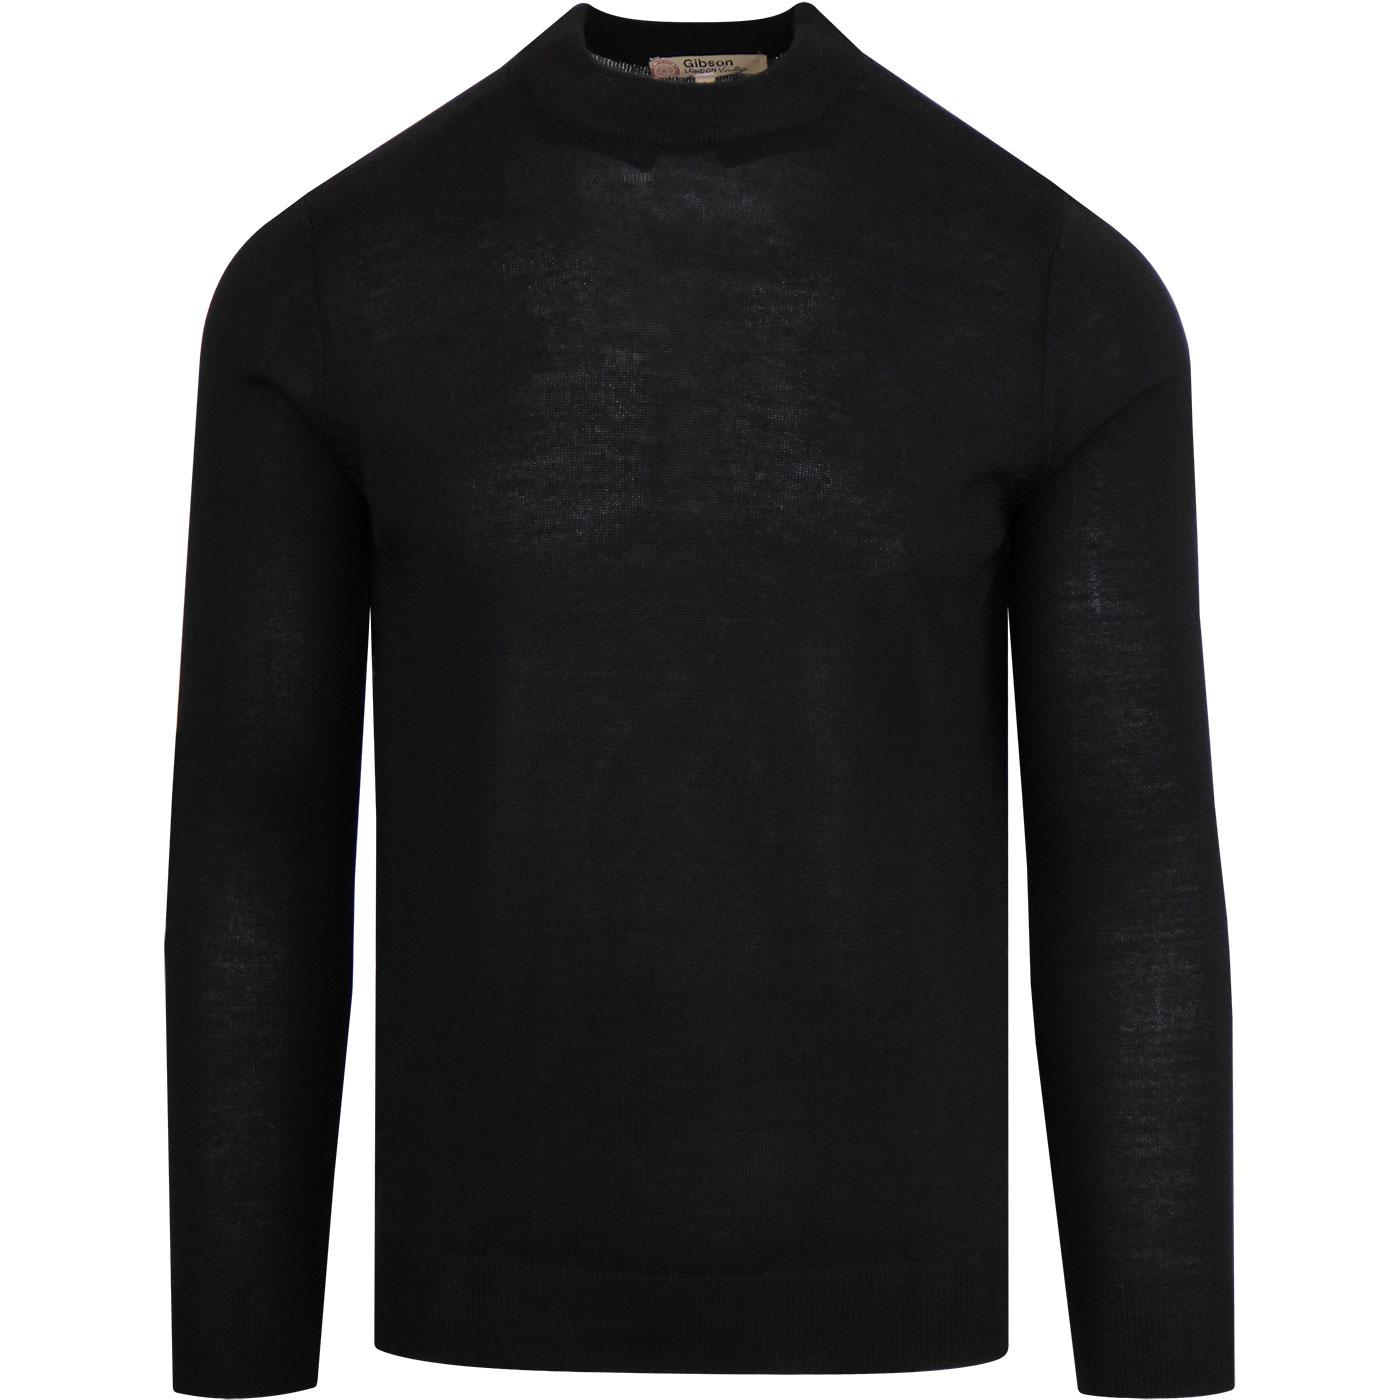 GIBSON LONDON Mod Knitted Turtle Neck Jumper (B)